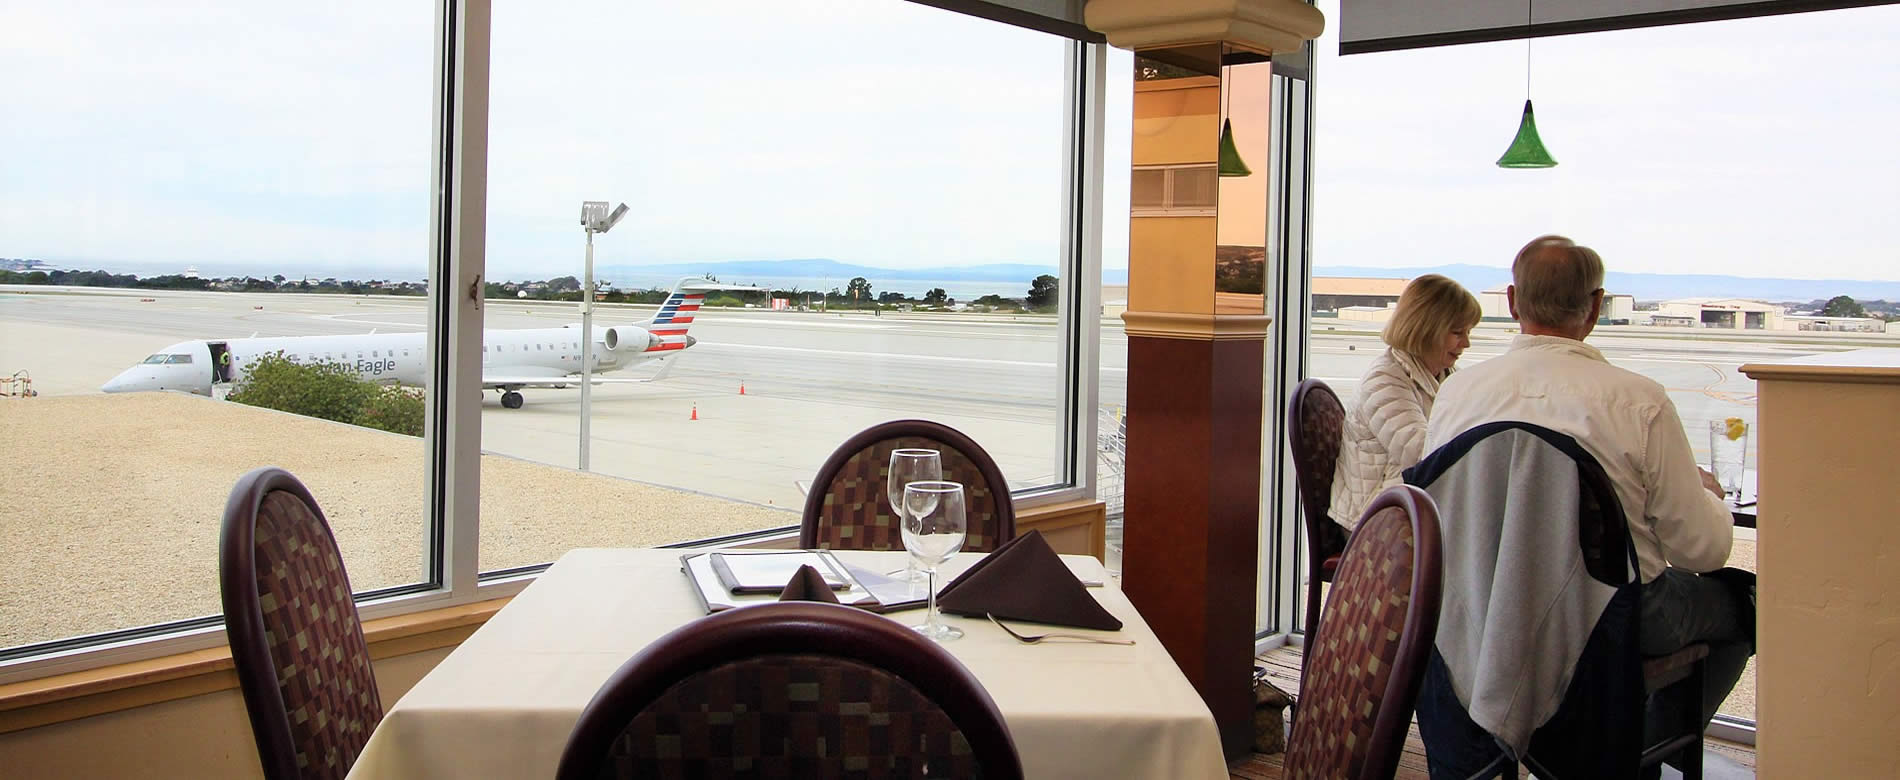 restaurant fly away cafe @ monterey regional airport